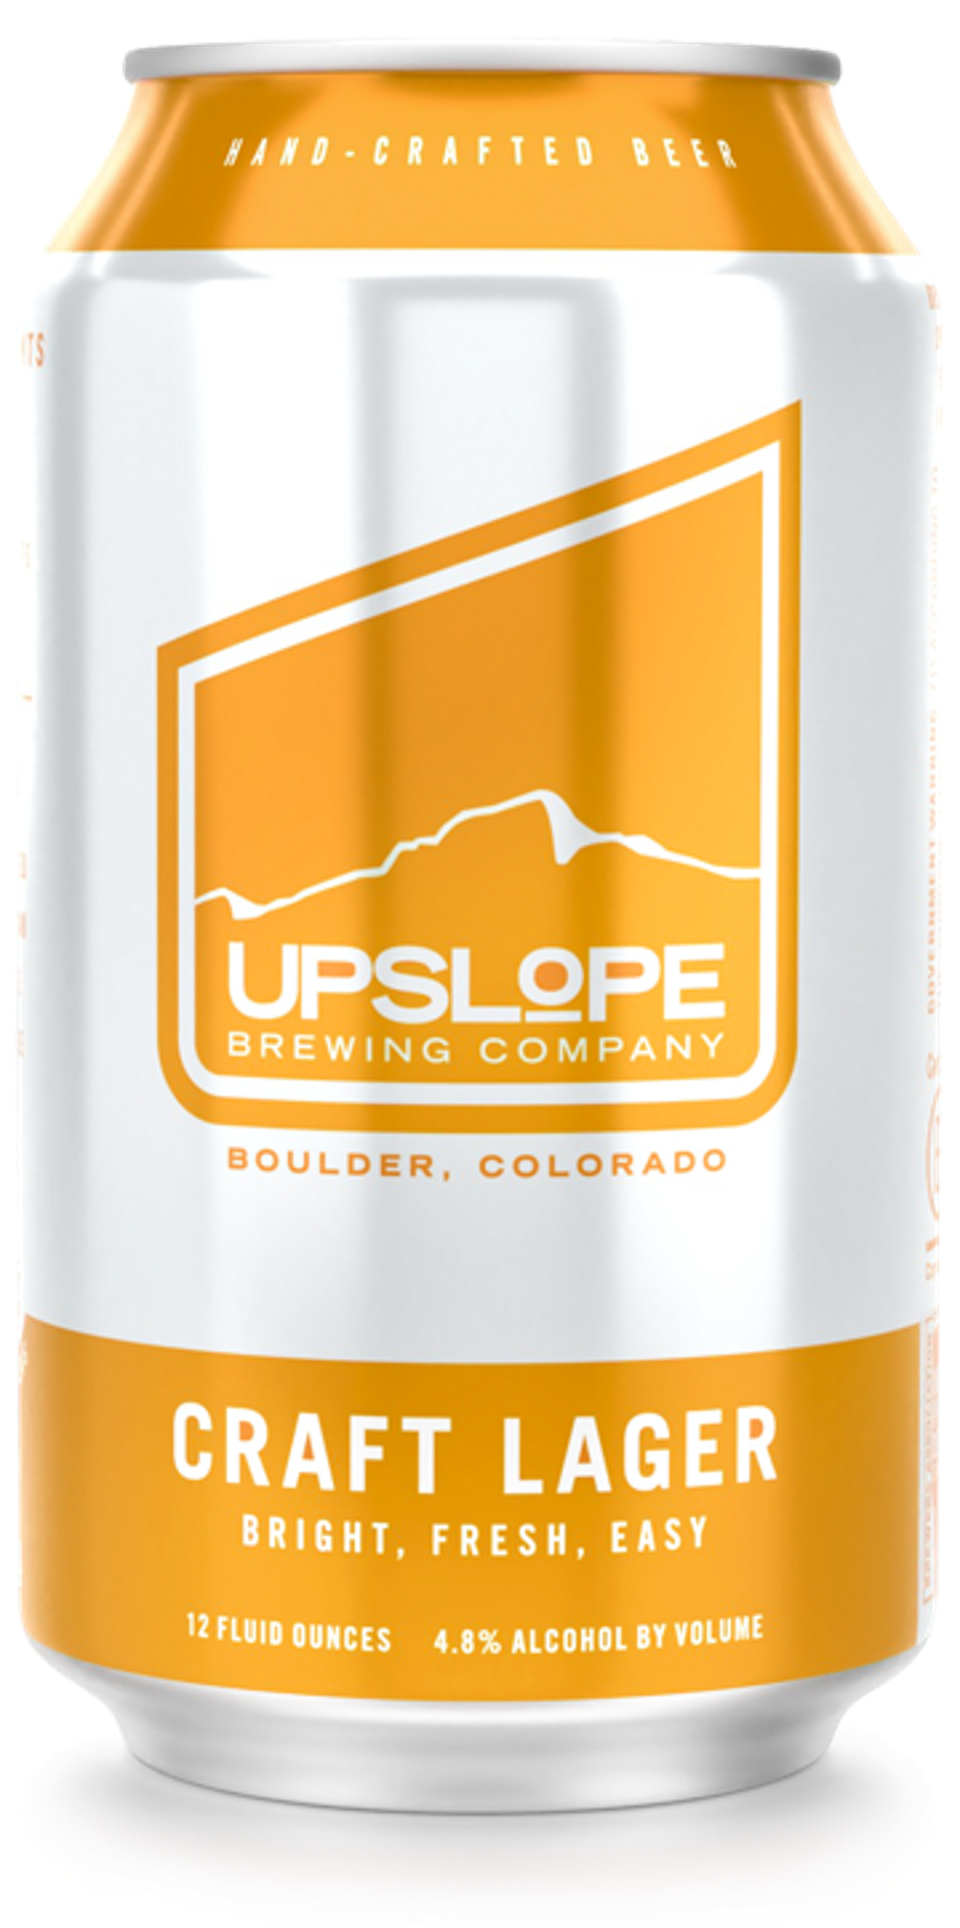 Craft Lager from Upslope Brewing Company.